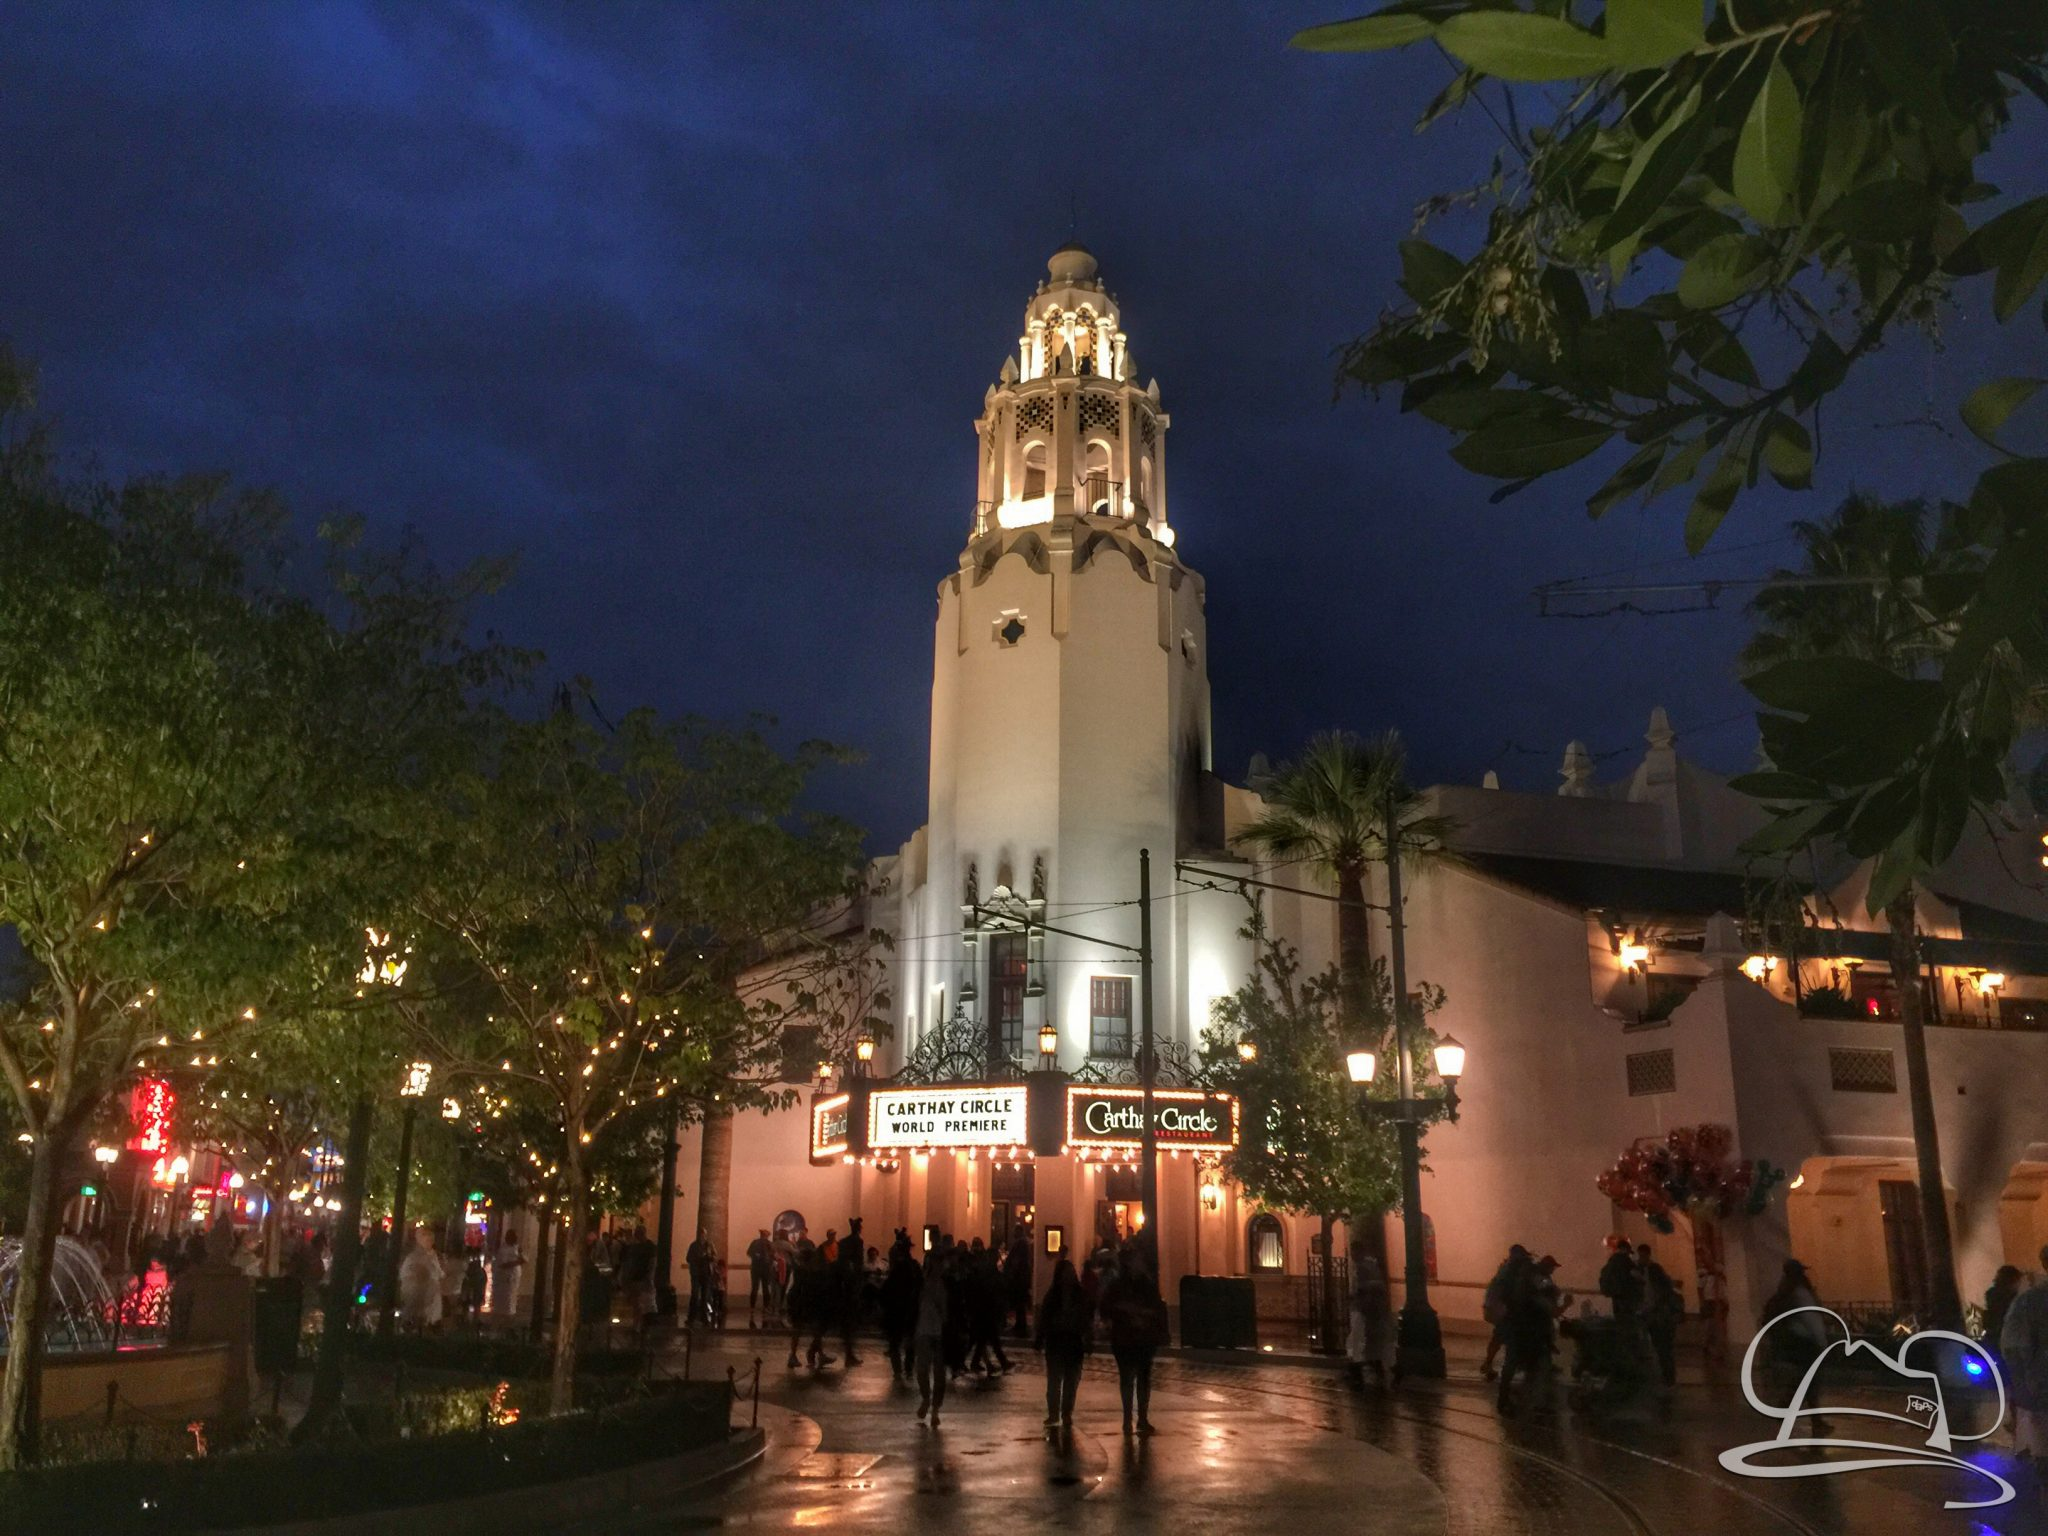 Carthay Circle in Disney California Adventure on a rainy night at the Disneyland Resort